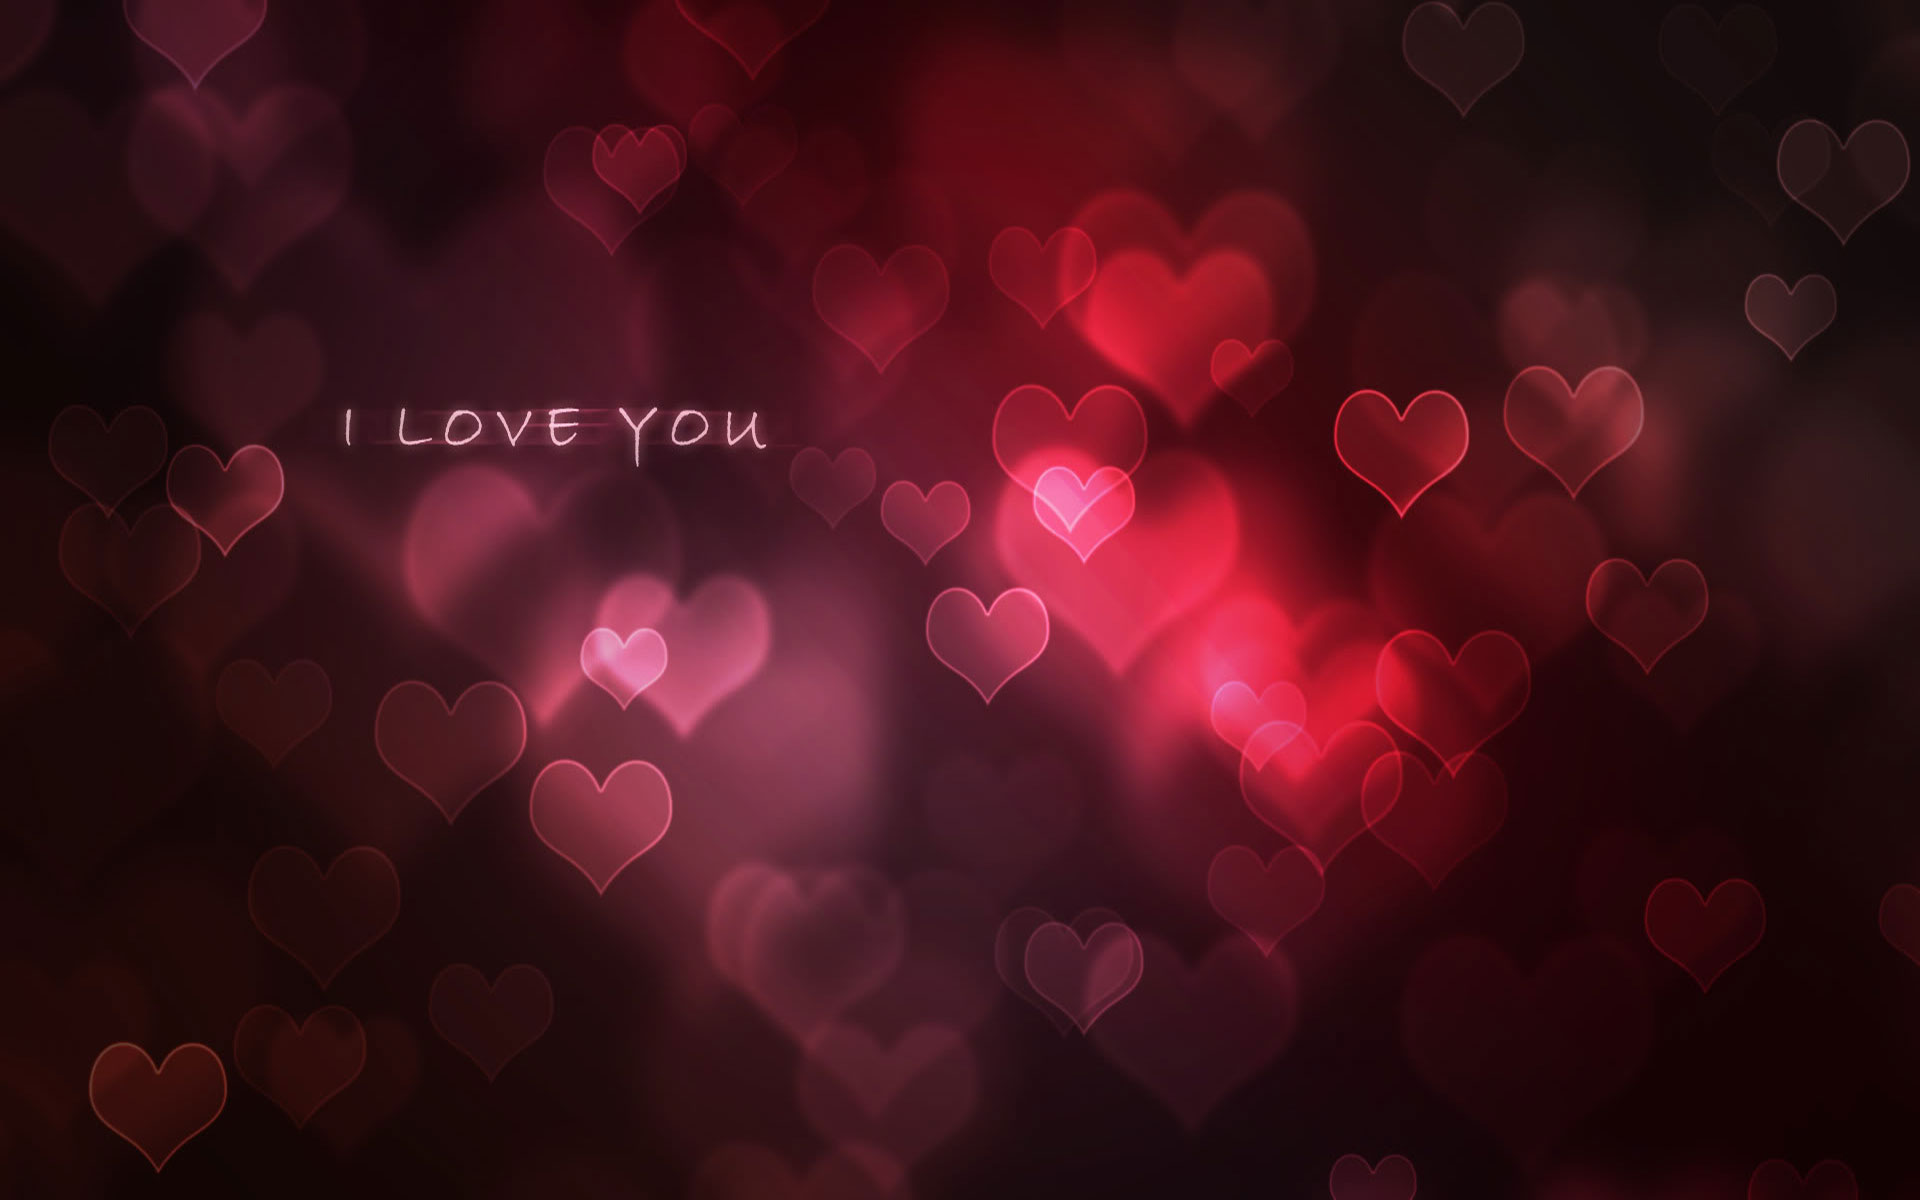 Love Wallpaper In Relationship : 25+ Free HD I Love You Wallpapers cute I Love You Images